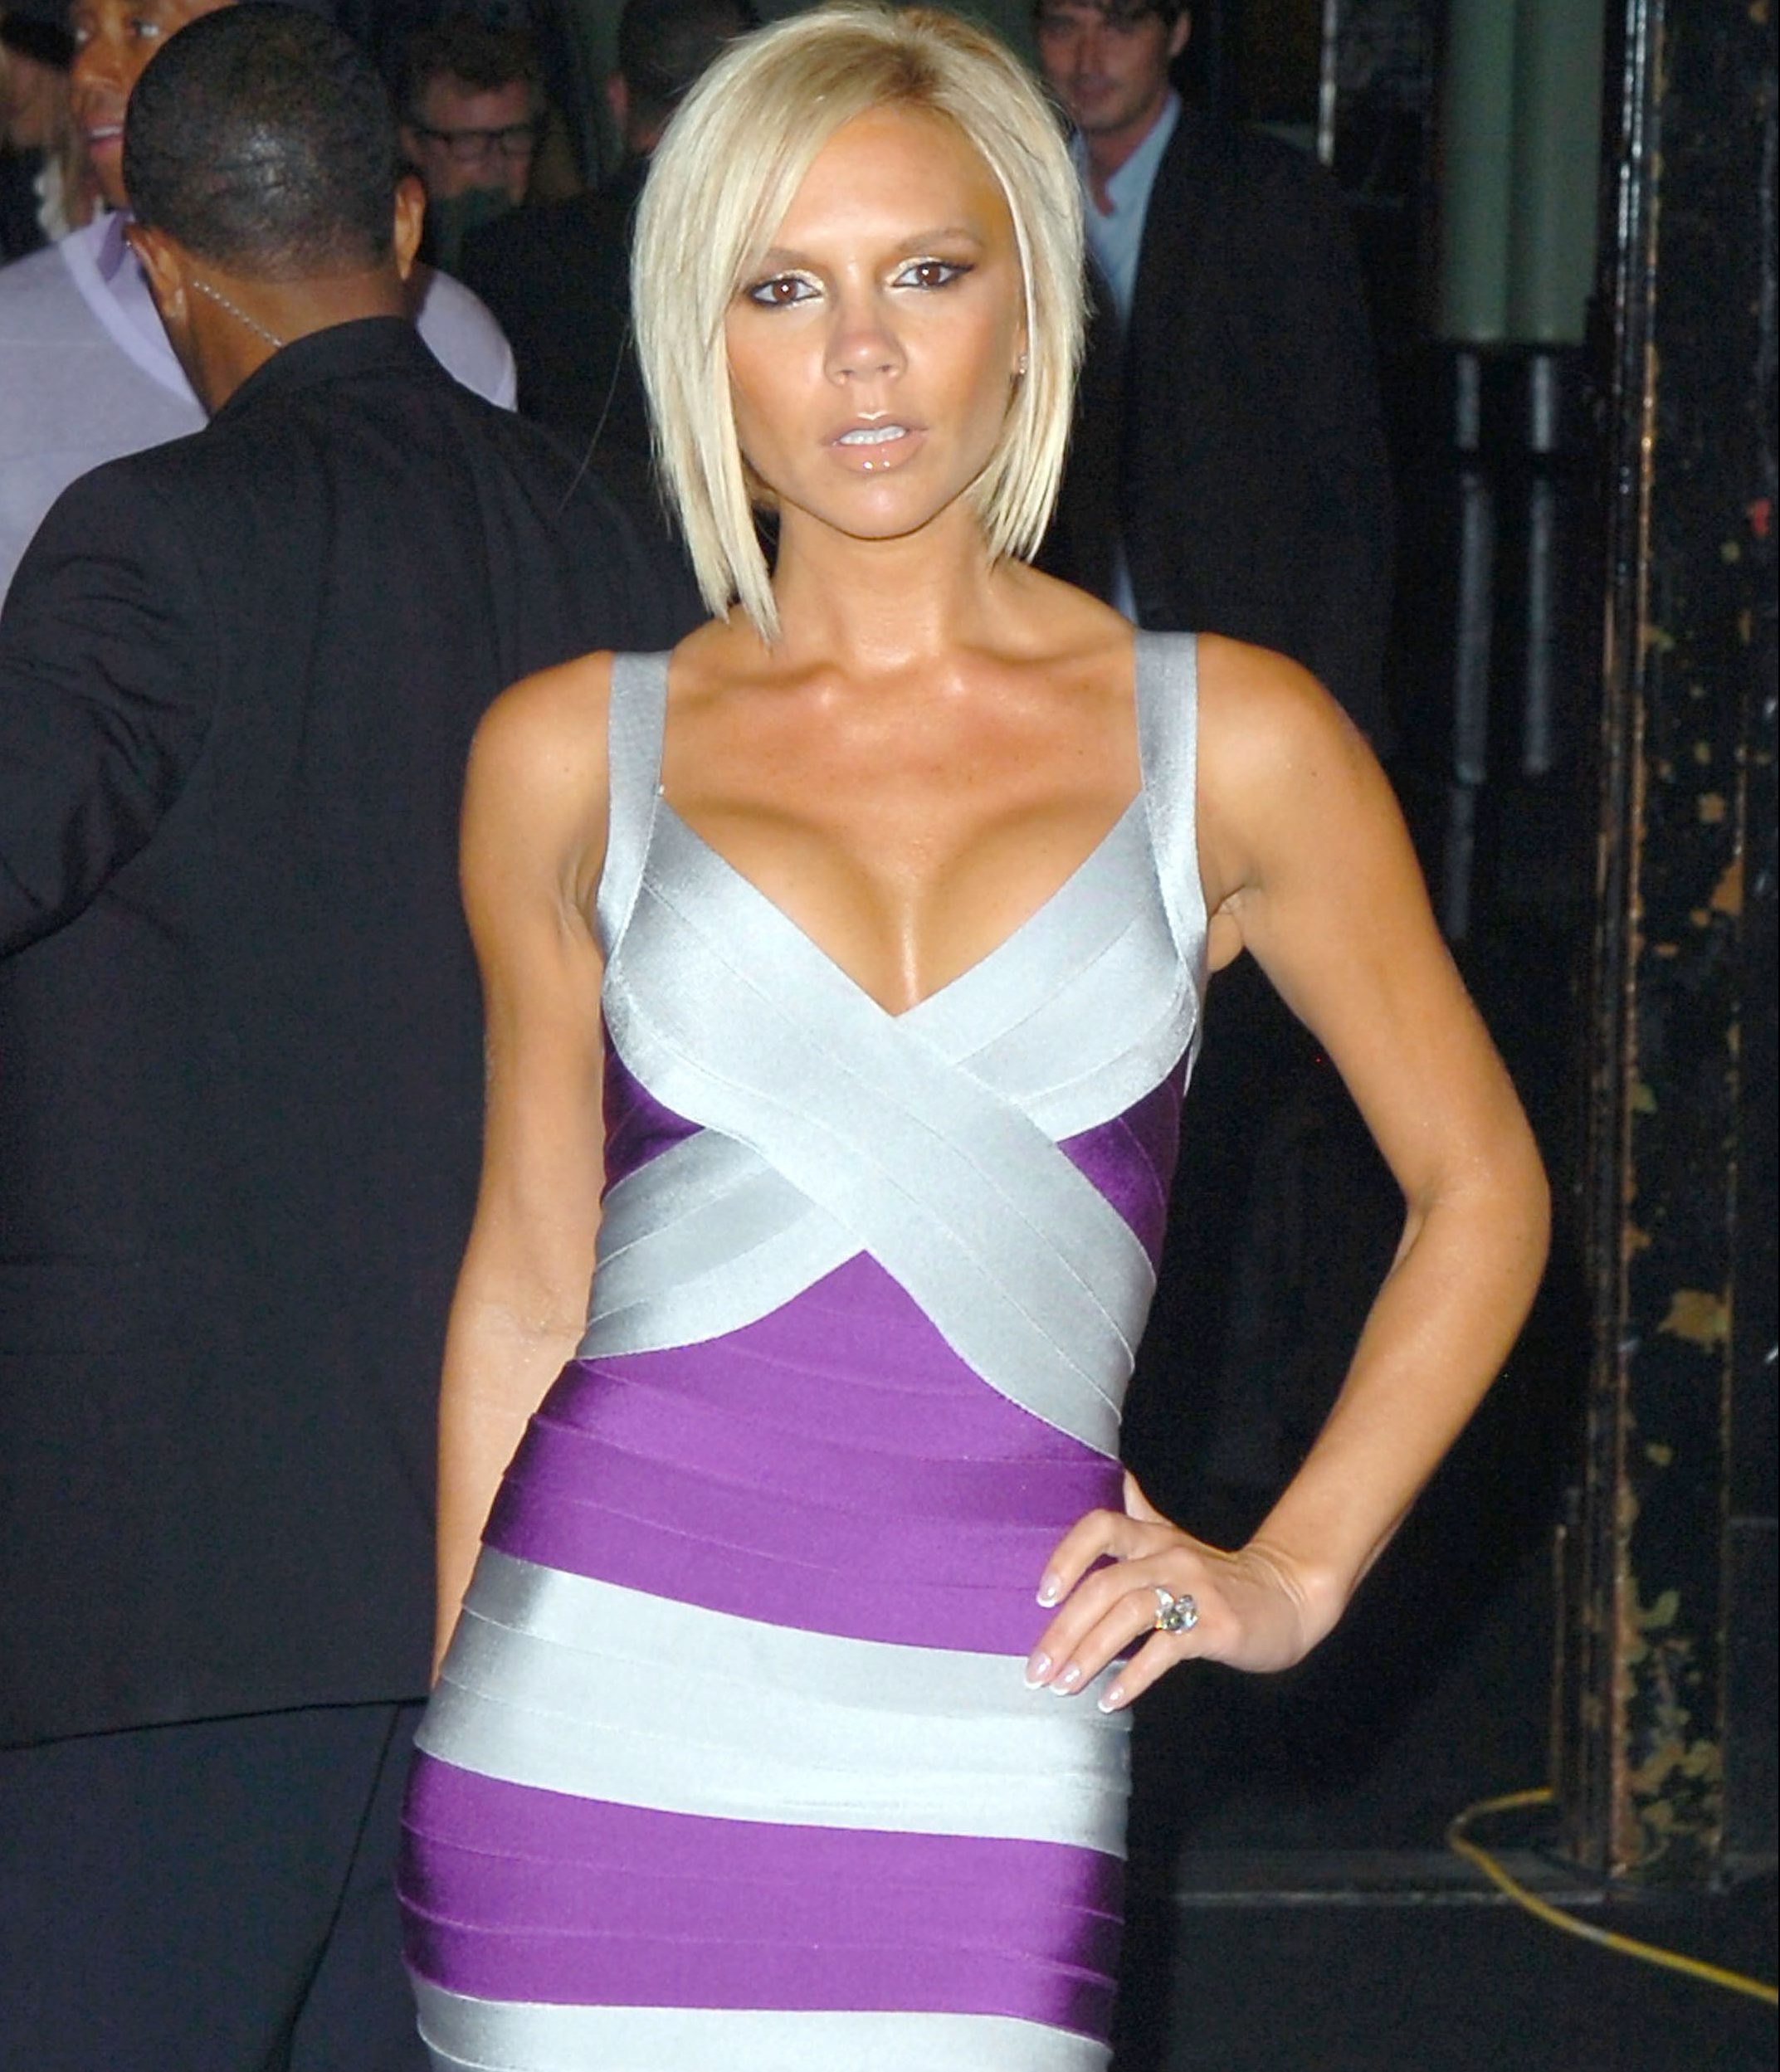 Victoria Beckham in Herve Leger bandage dress